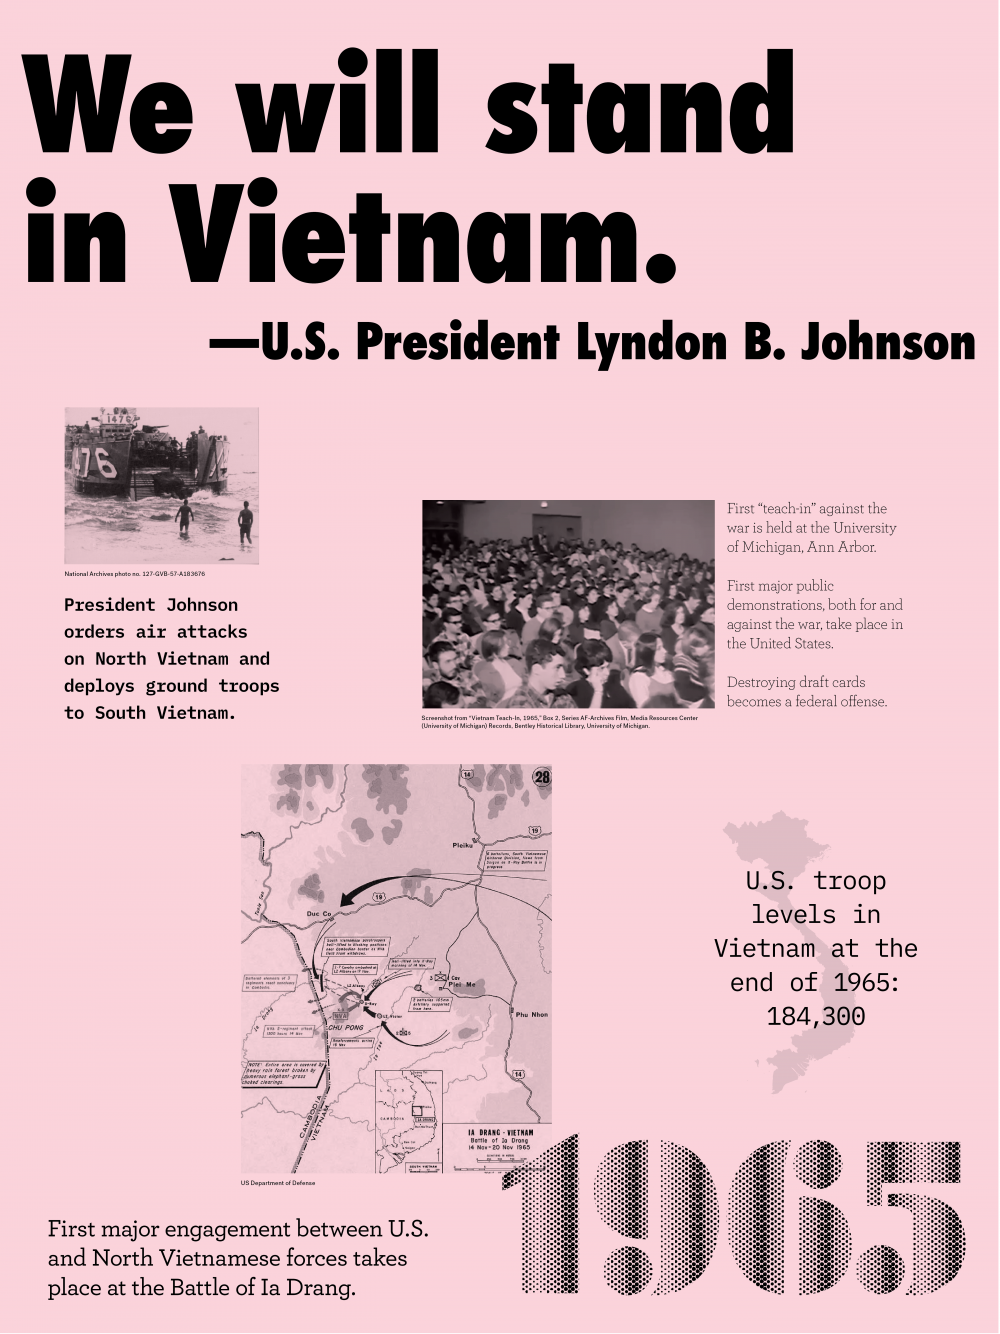 "Year: 1965 Quote/headline: ""We will stand in Vietnam""-U.S. President Lyndon B. Johnson Event: People walking towards a boat in the ocean. Image description: President Johnson orders air attacks on North Vietnam and deploys ground troops to South Vietnam. Event: Audience Image description: First ""teach-in"" against the war is held at the University of Michigan, Ann Arbor. First major public demonstrations, both for and against the war, take place in the United States. Event: Vietnam map Image description: U.S. troop levels in Vietnam at the end of 1965: 184,300 Event: Battle of Ia Drang map Image description: First major engagement between the U.S. and North Vietnamese forces takes place at the Battle of Ia Drung"